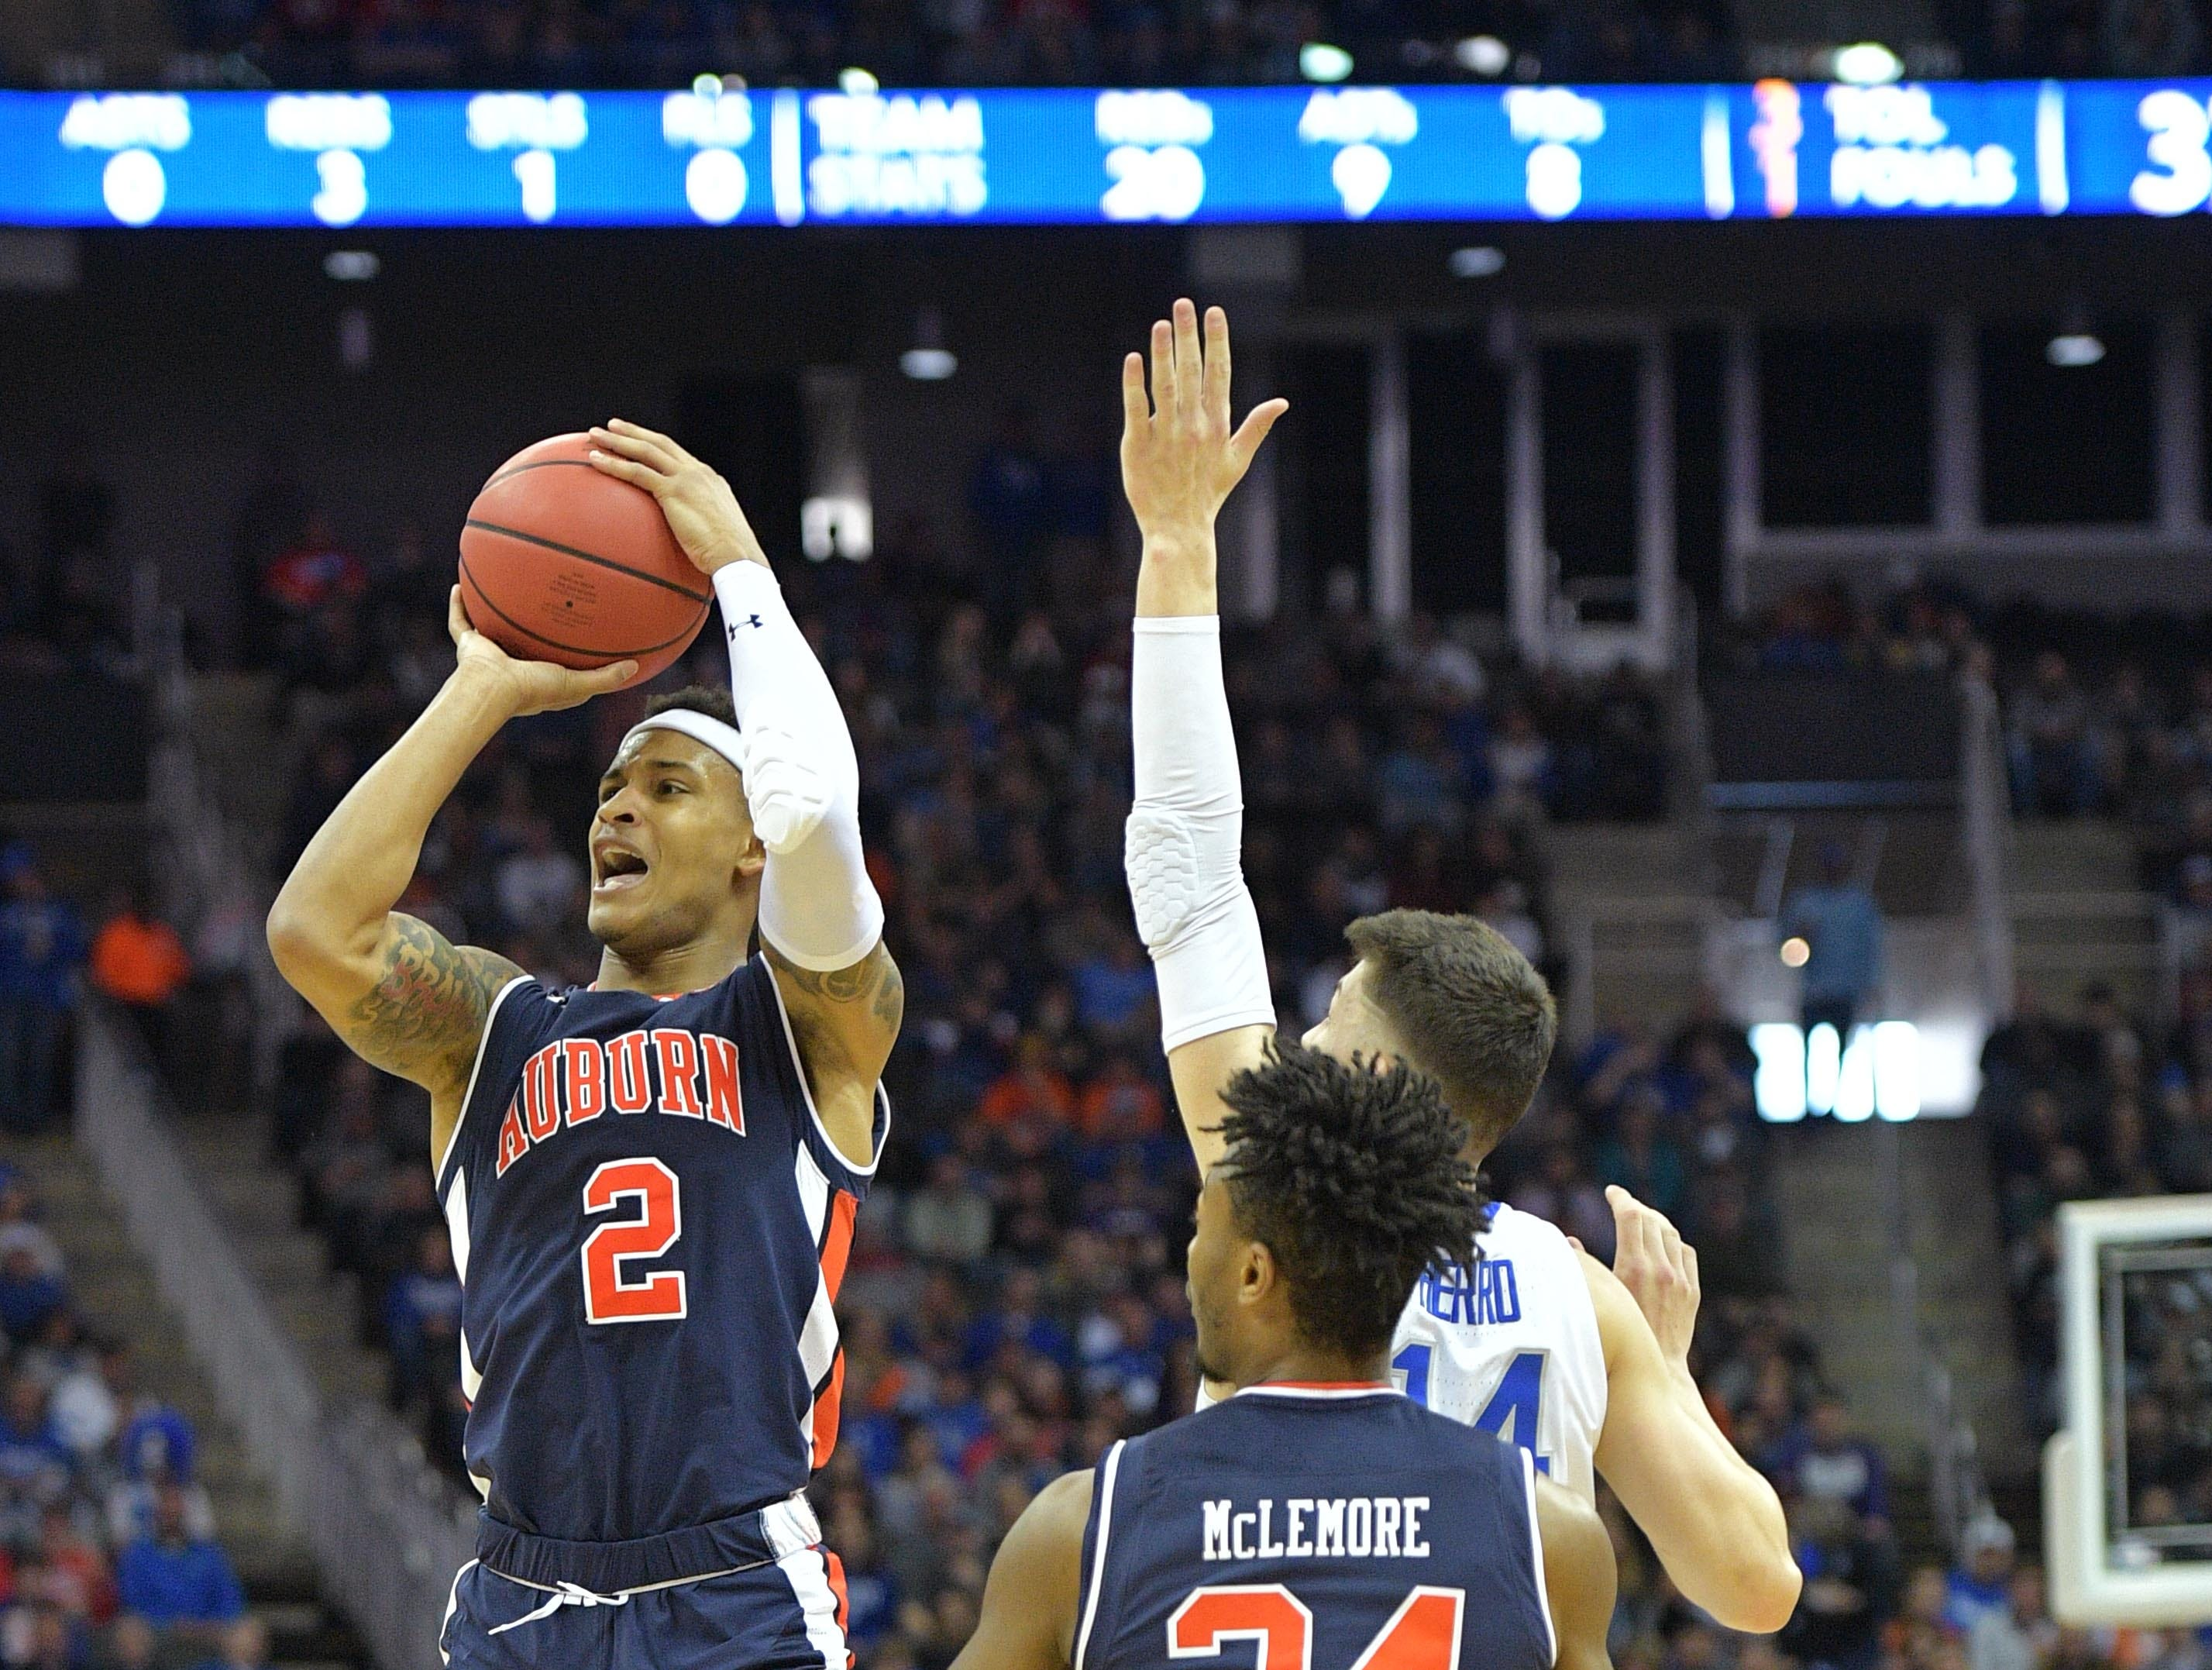 Mar 31, 2019; Kansas City, MO, United States; Auburn Tigers guard Bryce Brown (2) shoots against the Kentucky Wildcats during the second half in the championship game of the midwest regional of the 2019 NCAA Tournament at Sprint Center. Mandatory Credit: Denny Medley-USA TODAY Sports